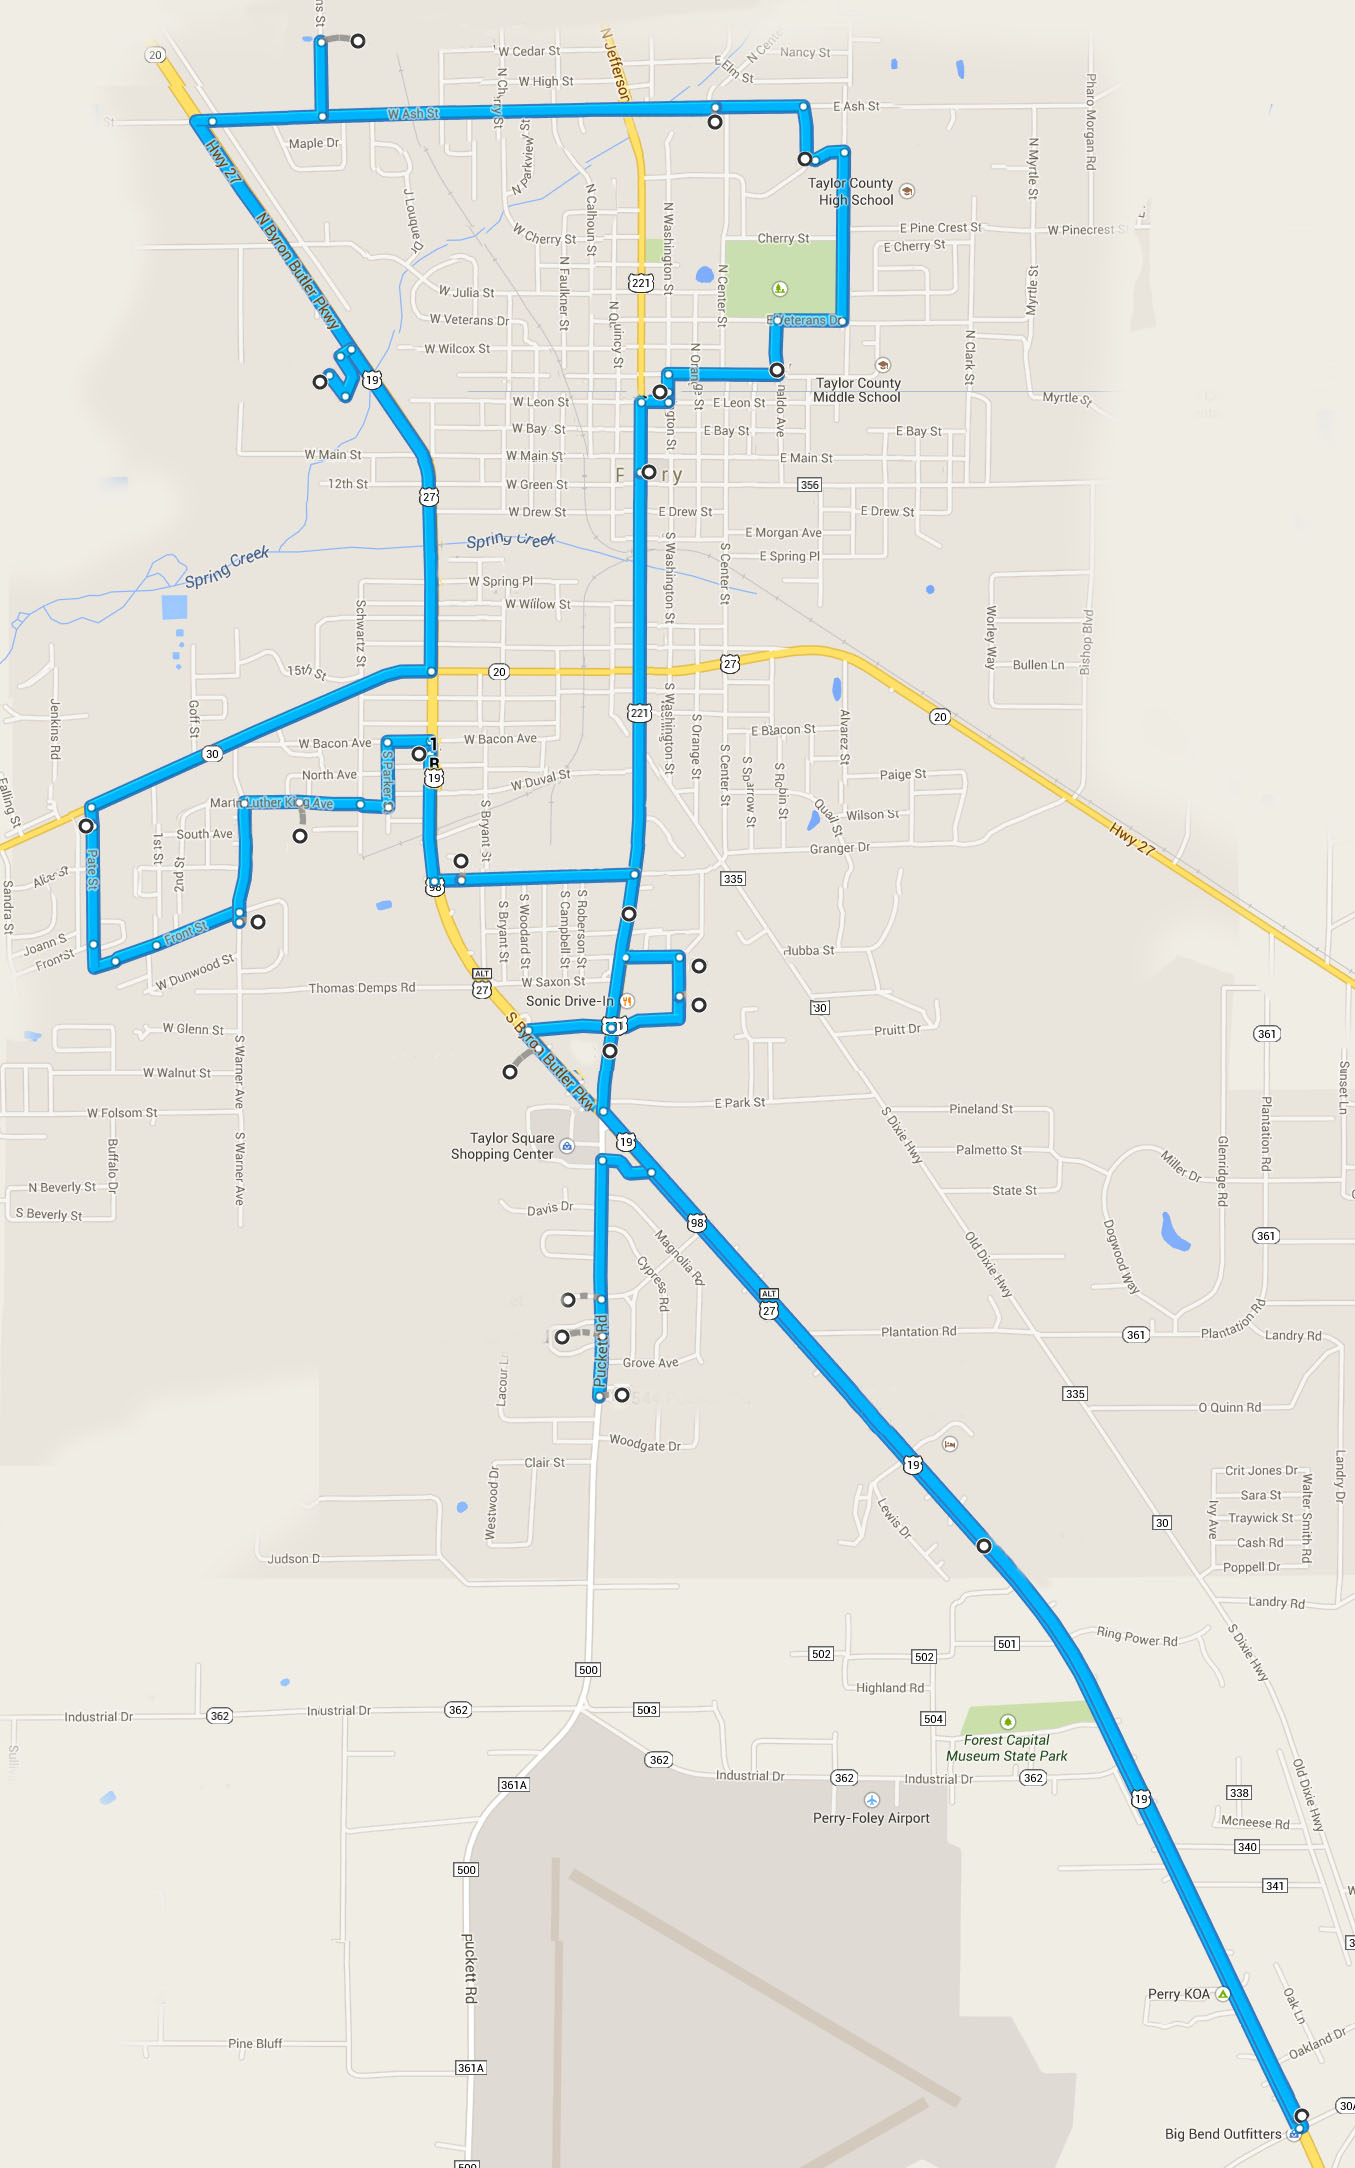 Route Map for TAYLOR COUNTY Shuttle